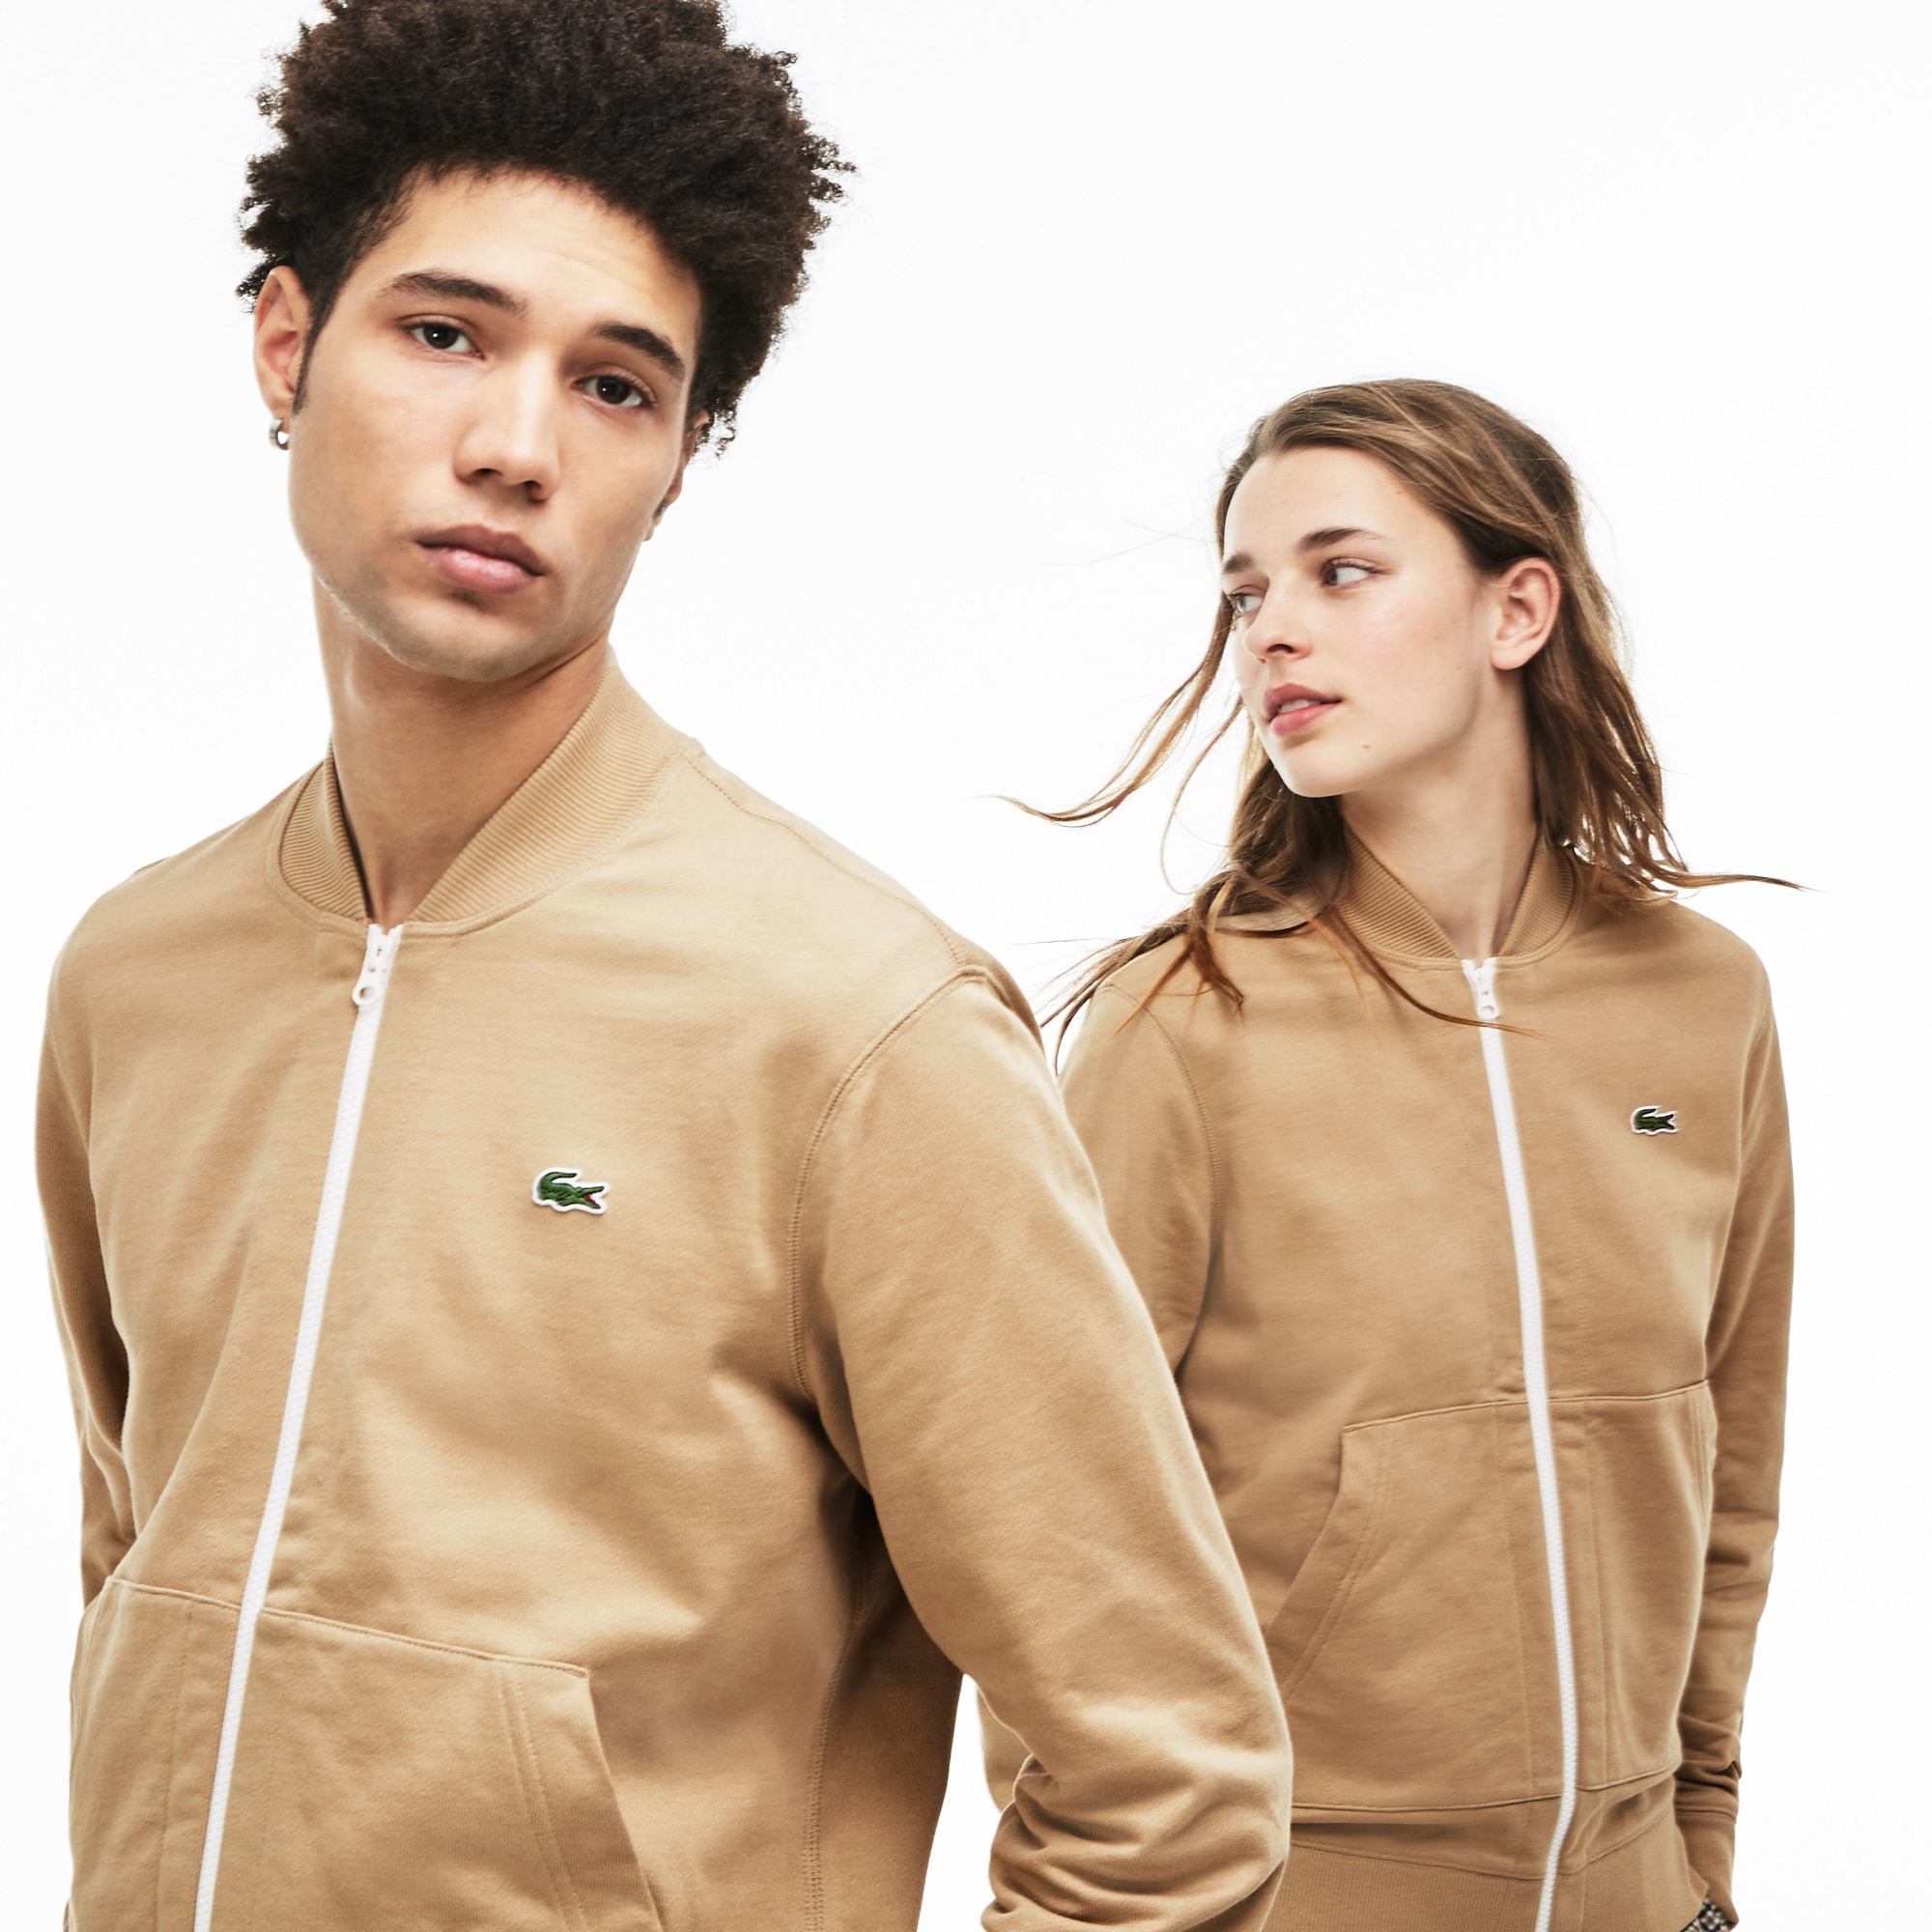 Unisex-Sweatshirt aus Fleece mit Teddy-Kragen LACOSTE L!VE